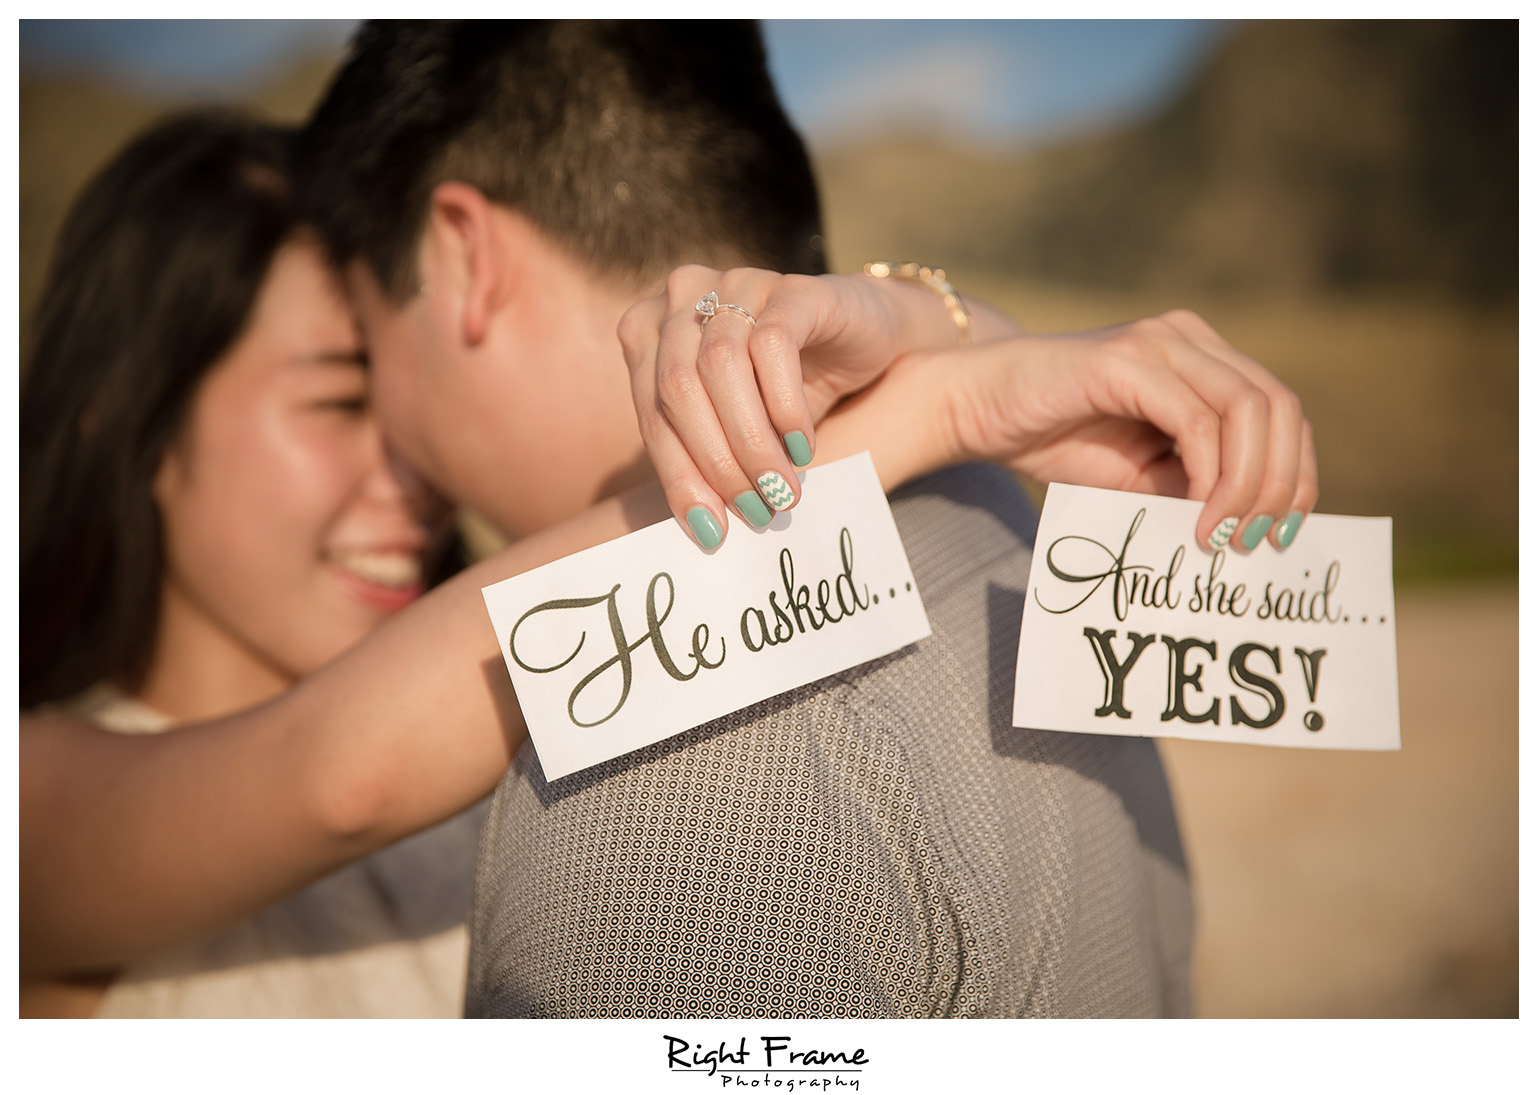 Romantic surprise hawaii engagement proposal by right frame for Surprise engagement photo shoot